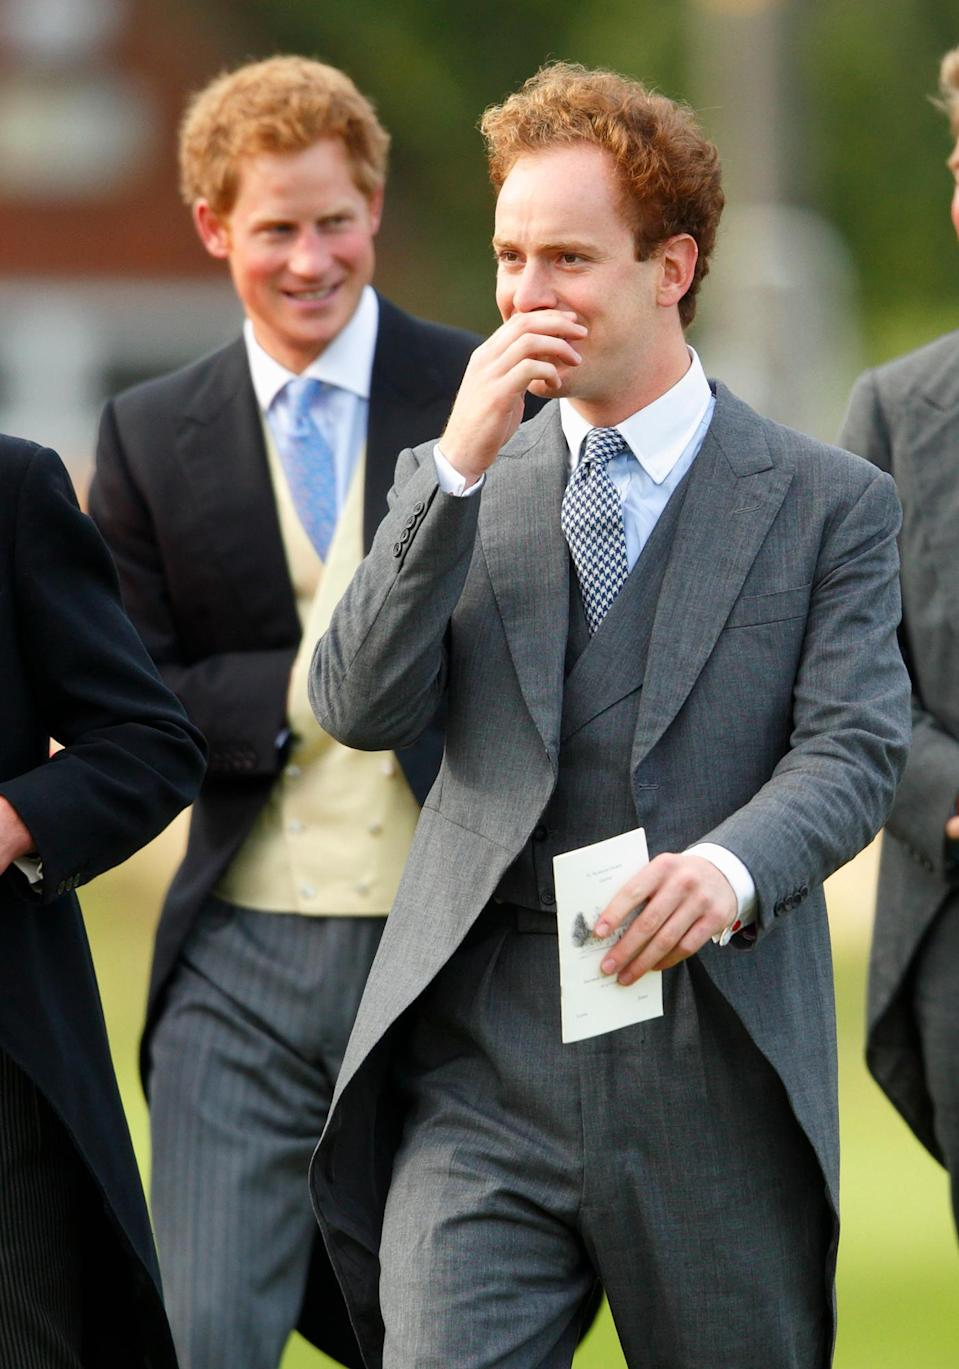 The former Eton schoolmates were reportedly inseparable before the wedding Photo: Getty Images